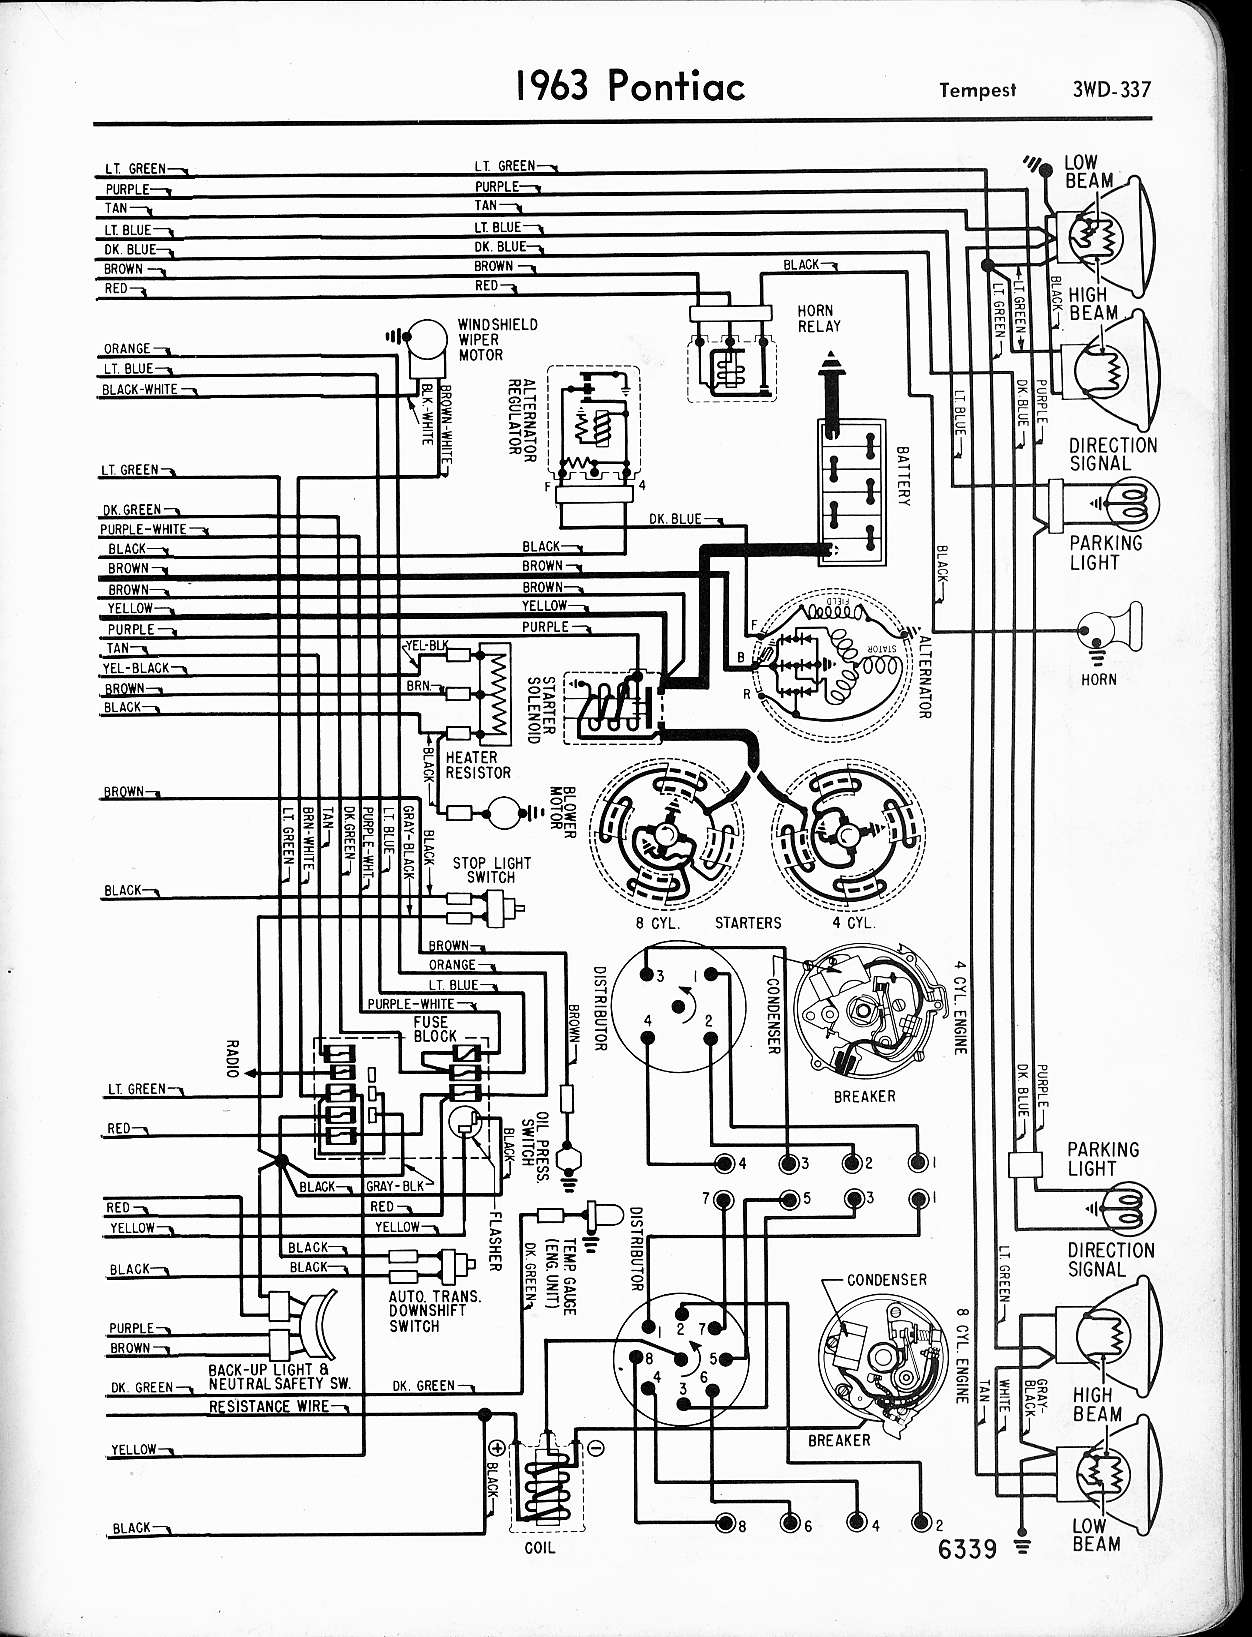 64 Chevy Fuse Diagram | Wiring Diagram 2019 on 1969 camaro wiring diagram, 70 chevelle wiring diagram, 1966 chevelle wiring diagram, 1966 impala wiring diagram, ignition box wiring diagram, 1968 camaro wiring diagram, 1964 nova exhaust system, 1964 nova radio, 1959 impala wiring diagram, 1965 chevelle wiring diagram, 1960 impala wiring diagram, 1965 impala wiring diagram, 1970 chevelle wiring diagram, 1968 chevelle wiring diagram, 1967 camaro wiring diagram, 1967 impala wiring diagram, 64 chevelle wiring diagram, 1964 nova relay, 1963 corvette wiring diagram, 1964 nova headlight,